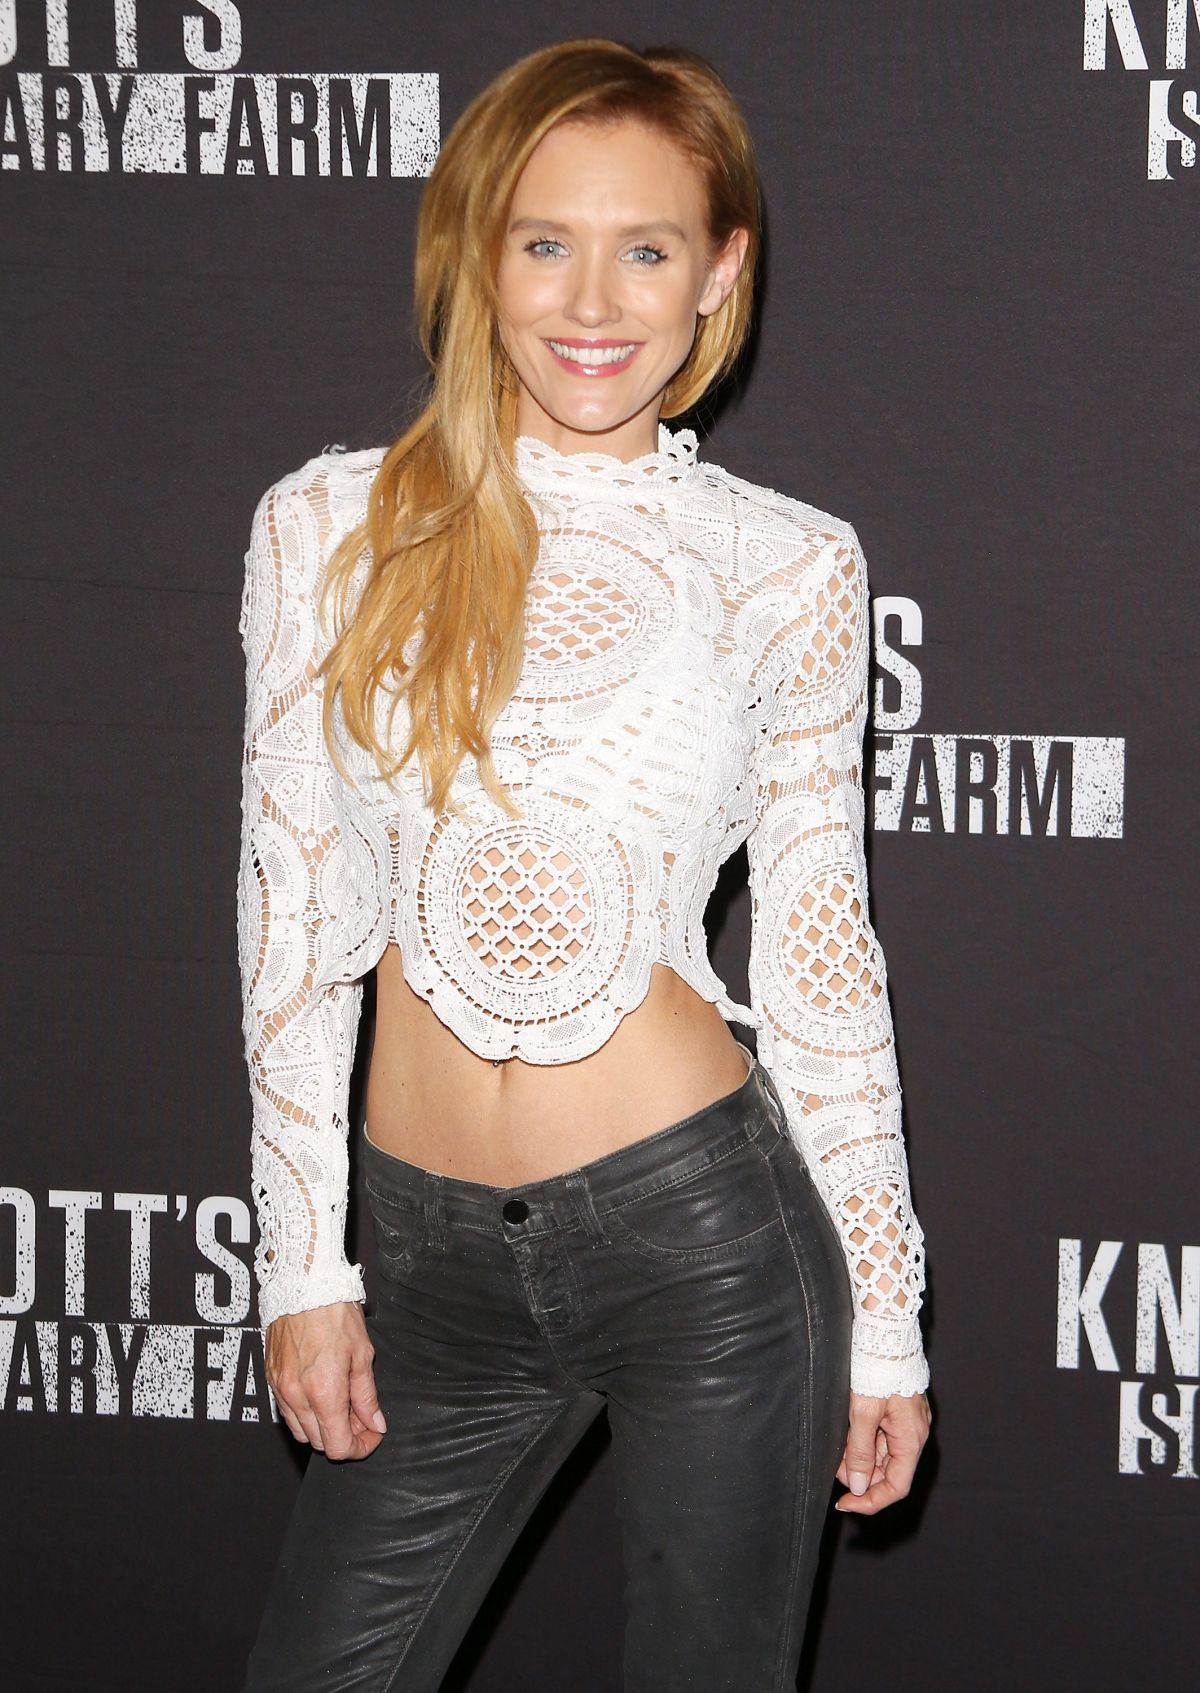 NICKY WHELAN at Knott's Scary Farm Opening Night in Buena Patk 09/30/2016